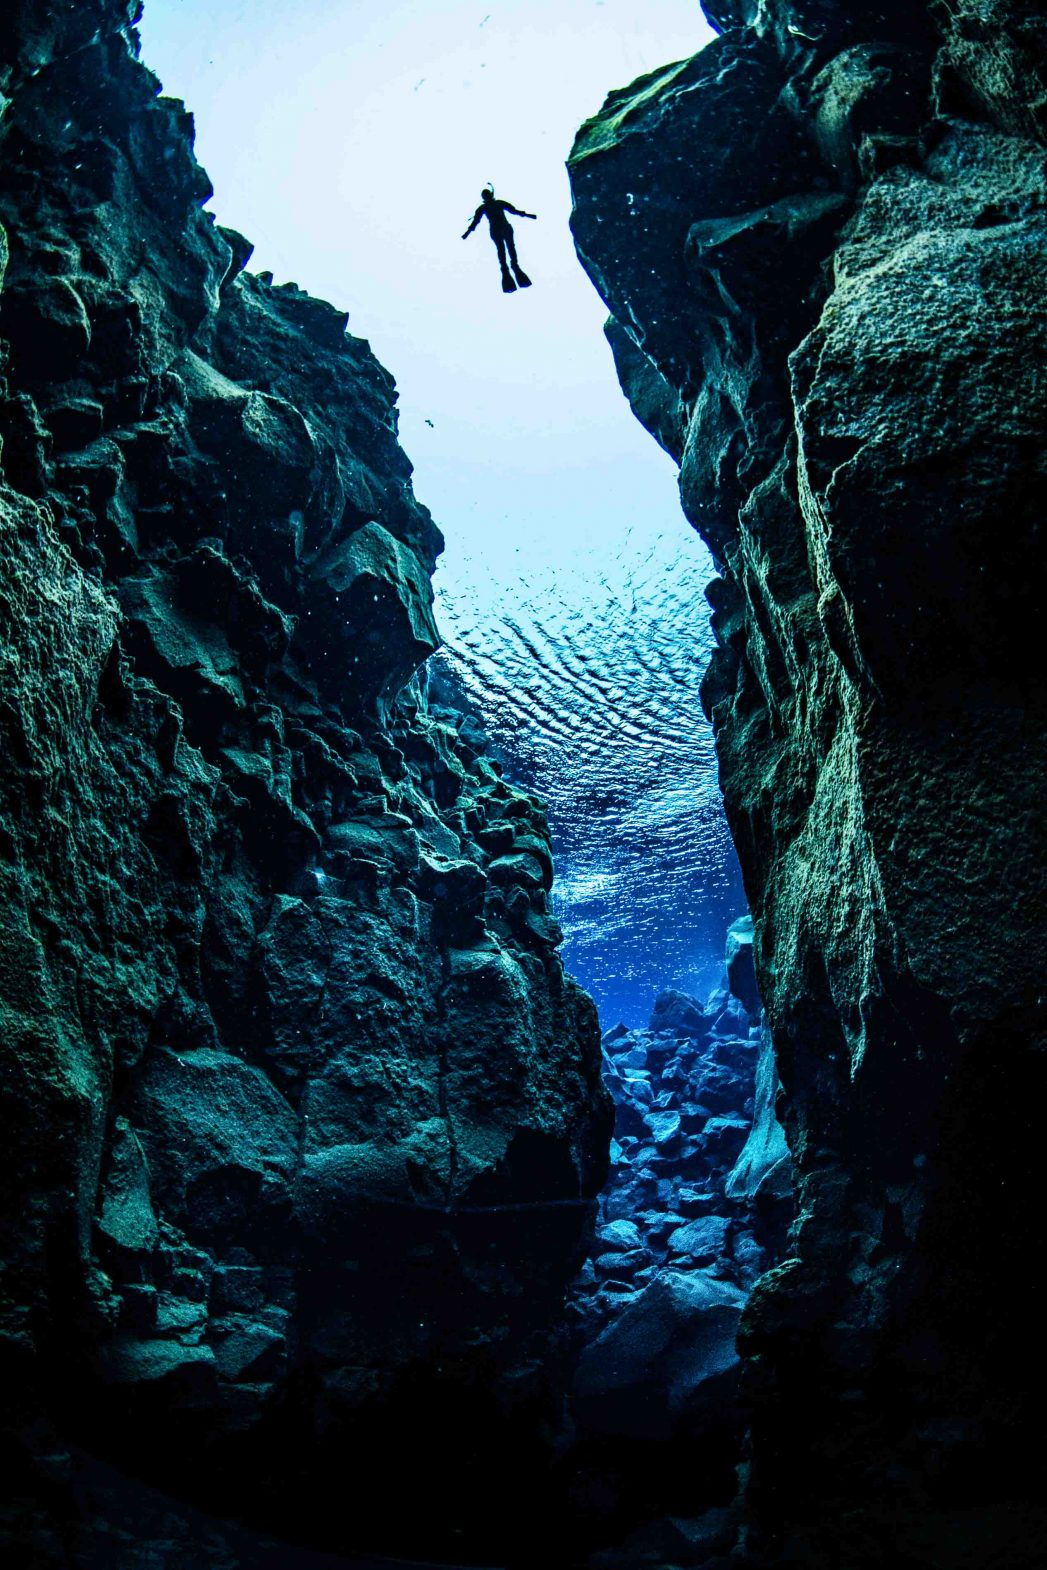 Into the deep: Snorkeling in Iceland's Silfra fissure between two continents, is an extraordinary experience